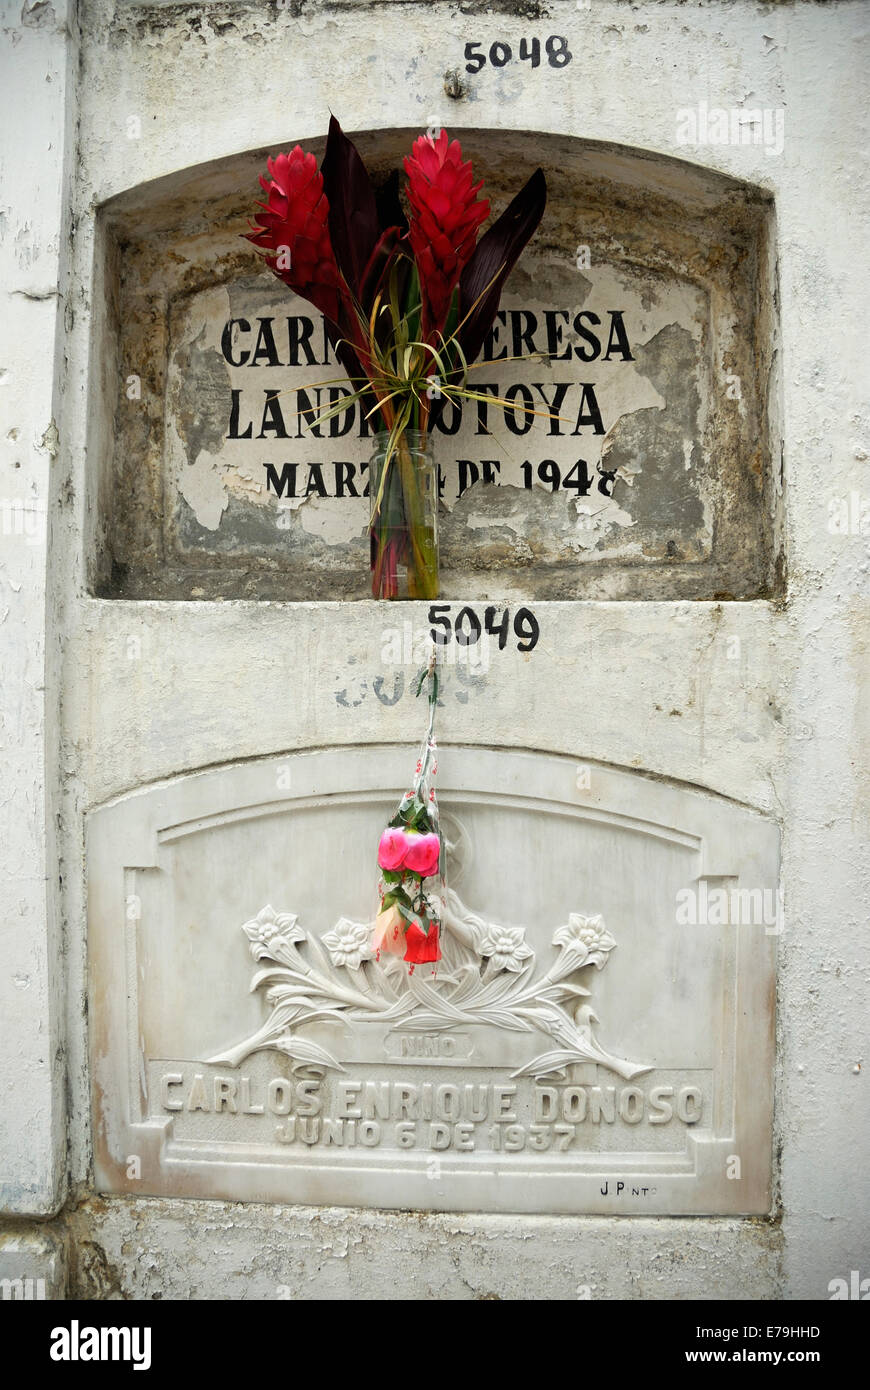 Gravestone at graveyard La Ciudad Blanca or White City cemetery, Guayaquil, Ecuador, South America - Stock Image